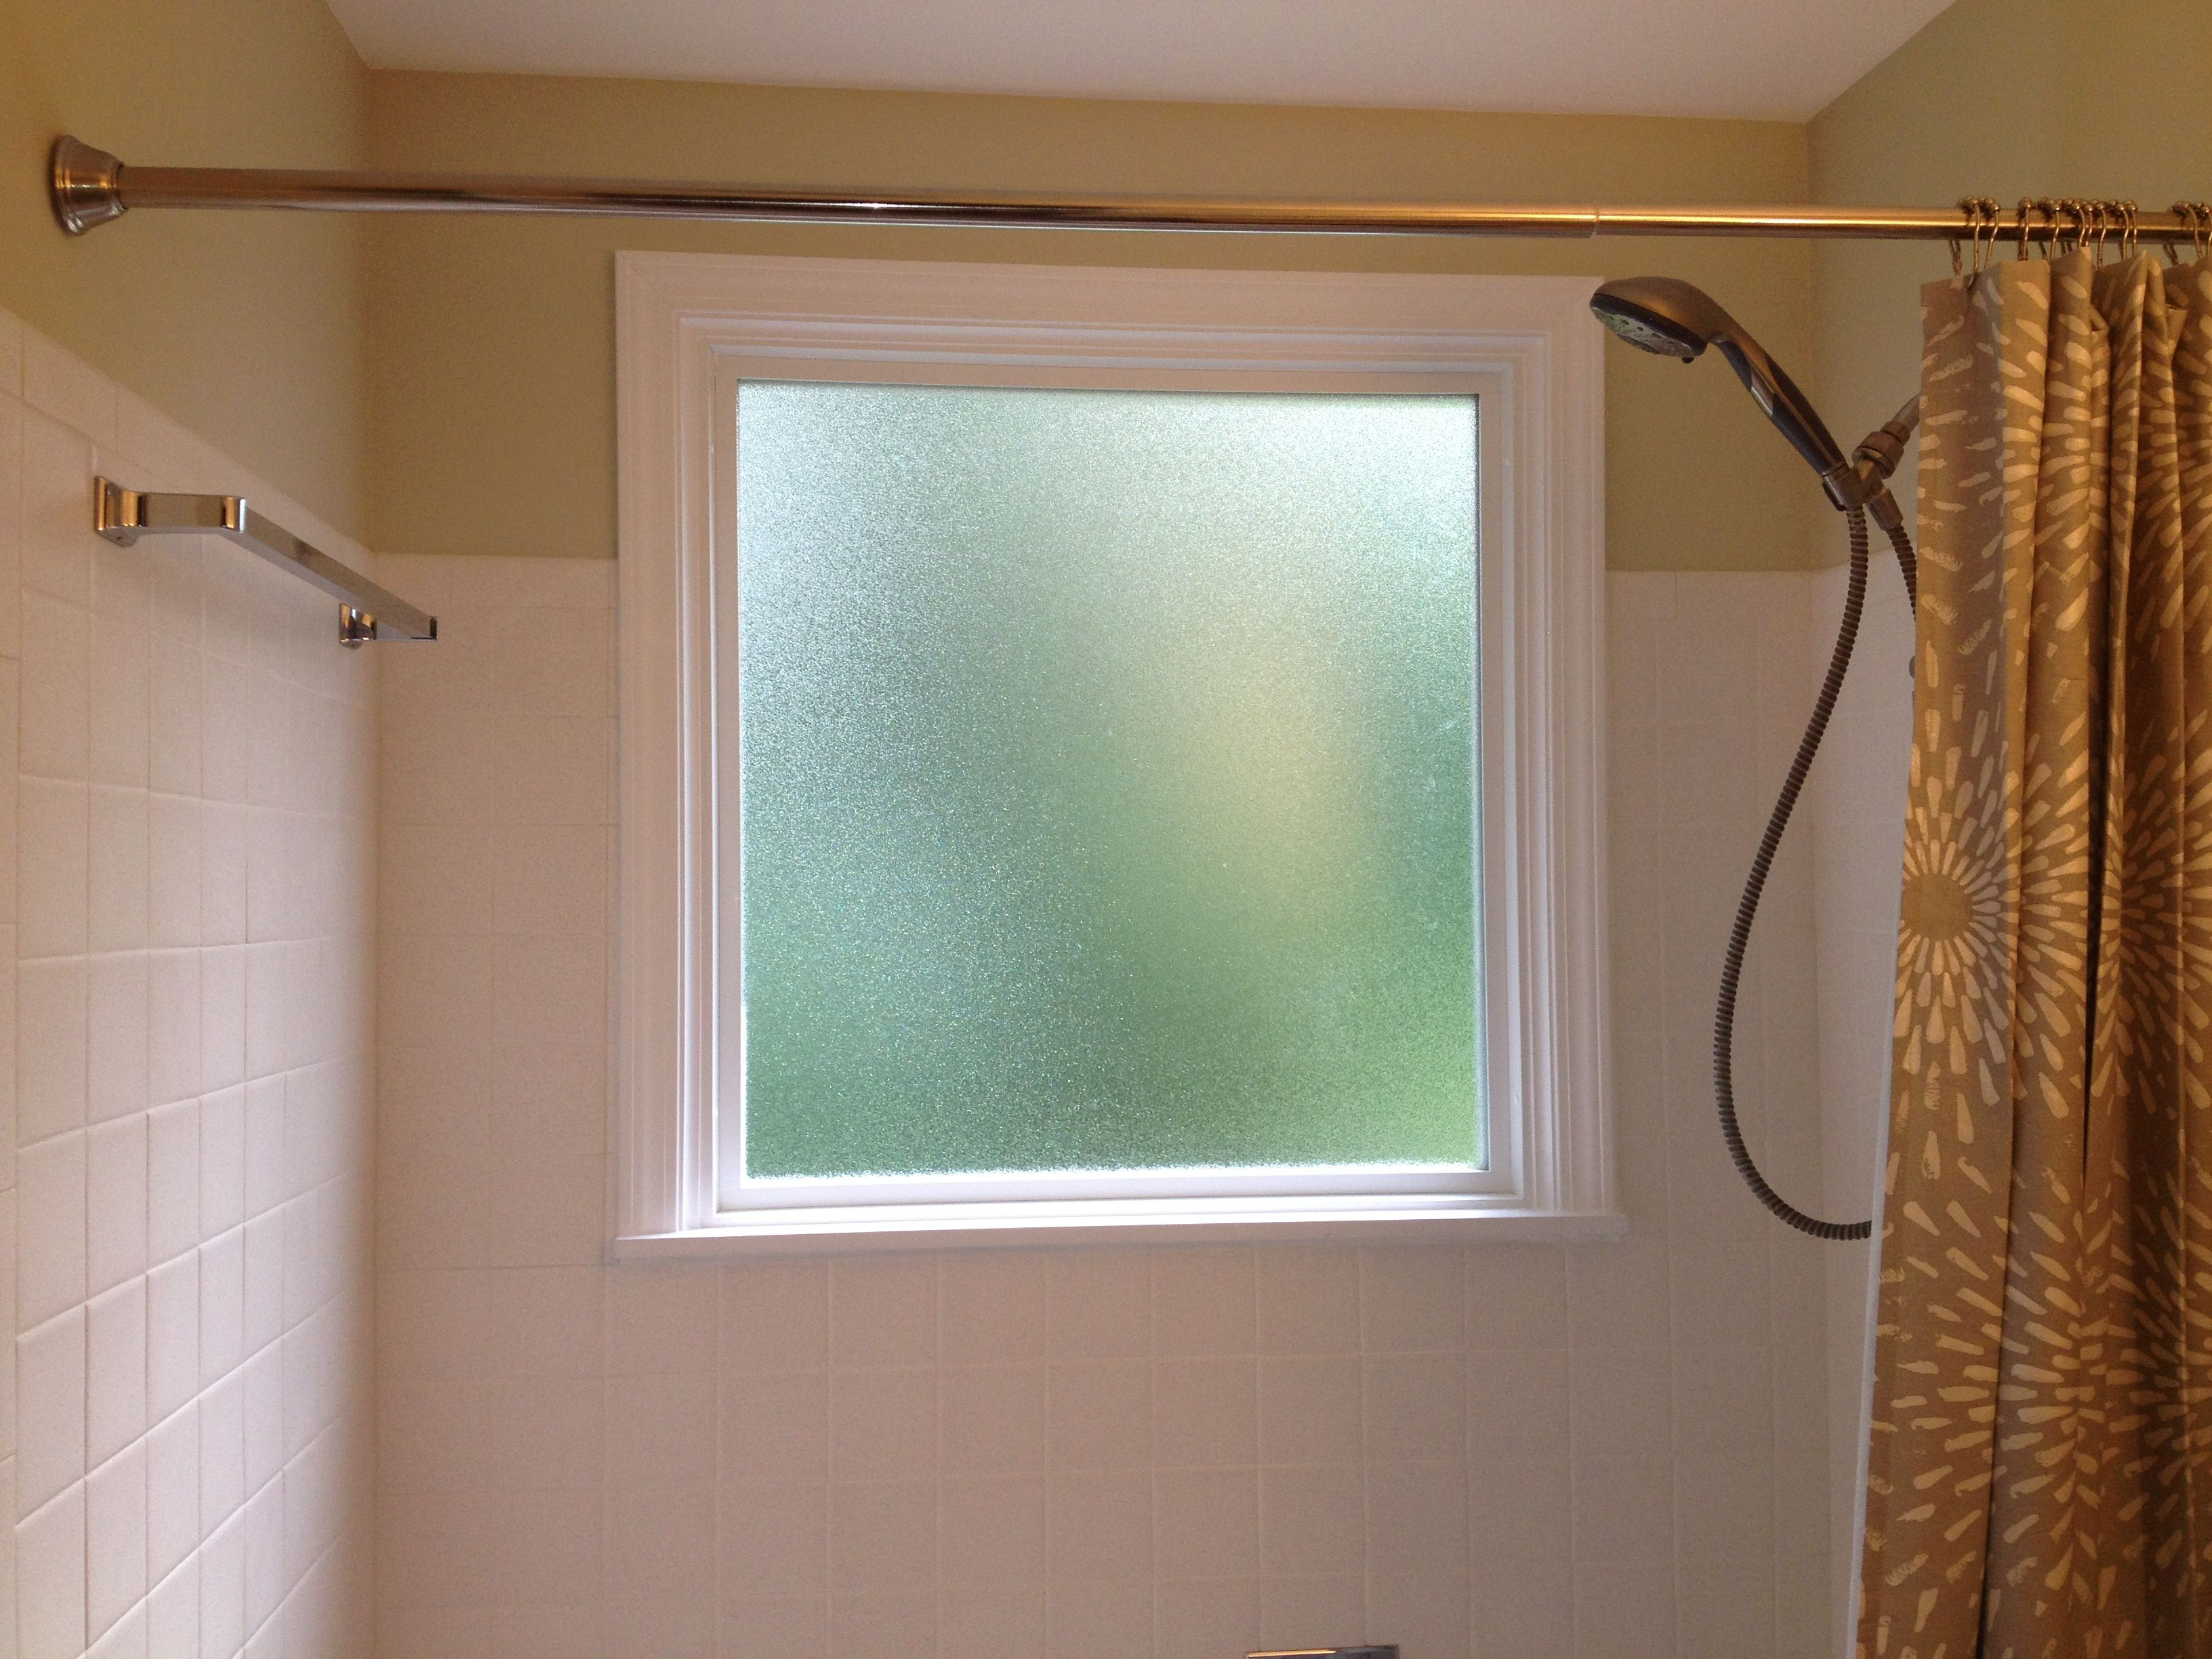 What to do if you have a window in your shower..... Install a vinyl Framing Around Bat Window on framing around mirrors, a frame house windows, framing decks, framing around columns, framing floors, proper framing for windows, framing around chimneys, framing doors, framing around hvac ducts, framing out a window,